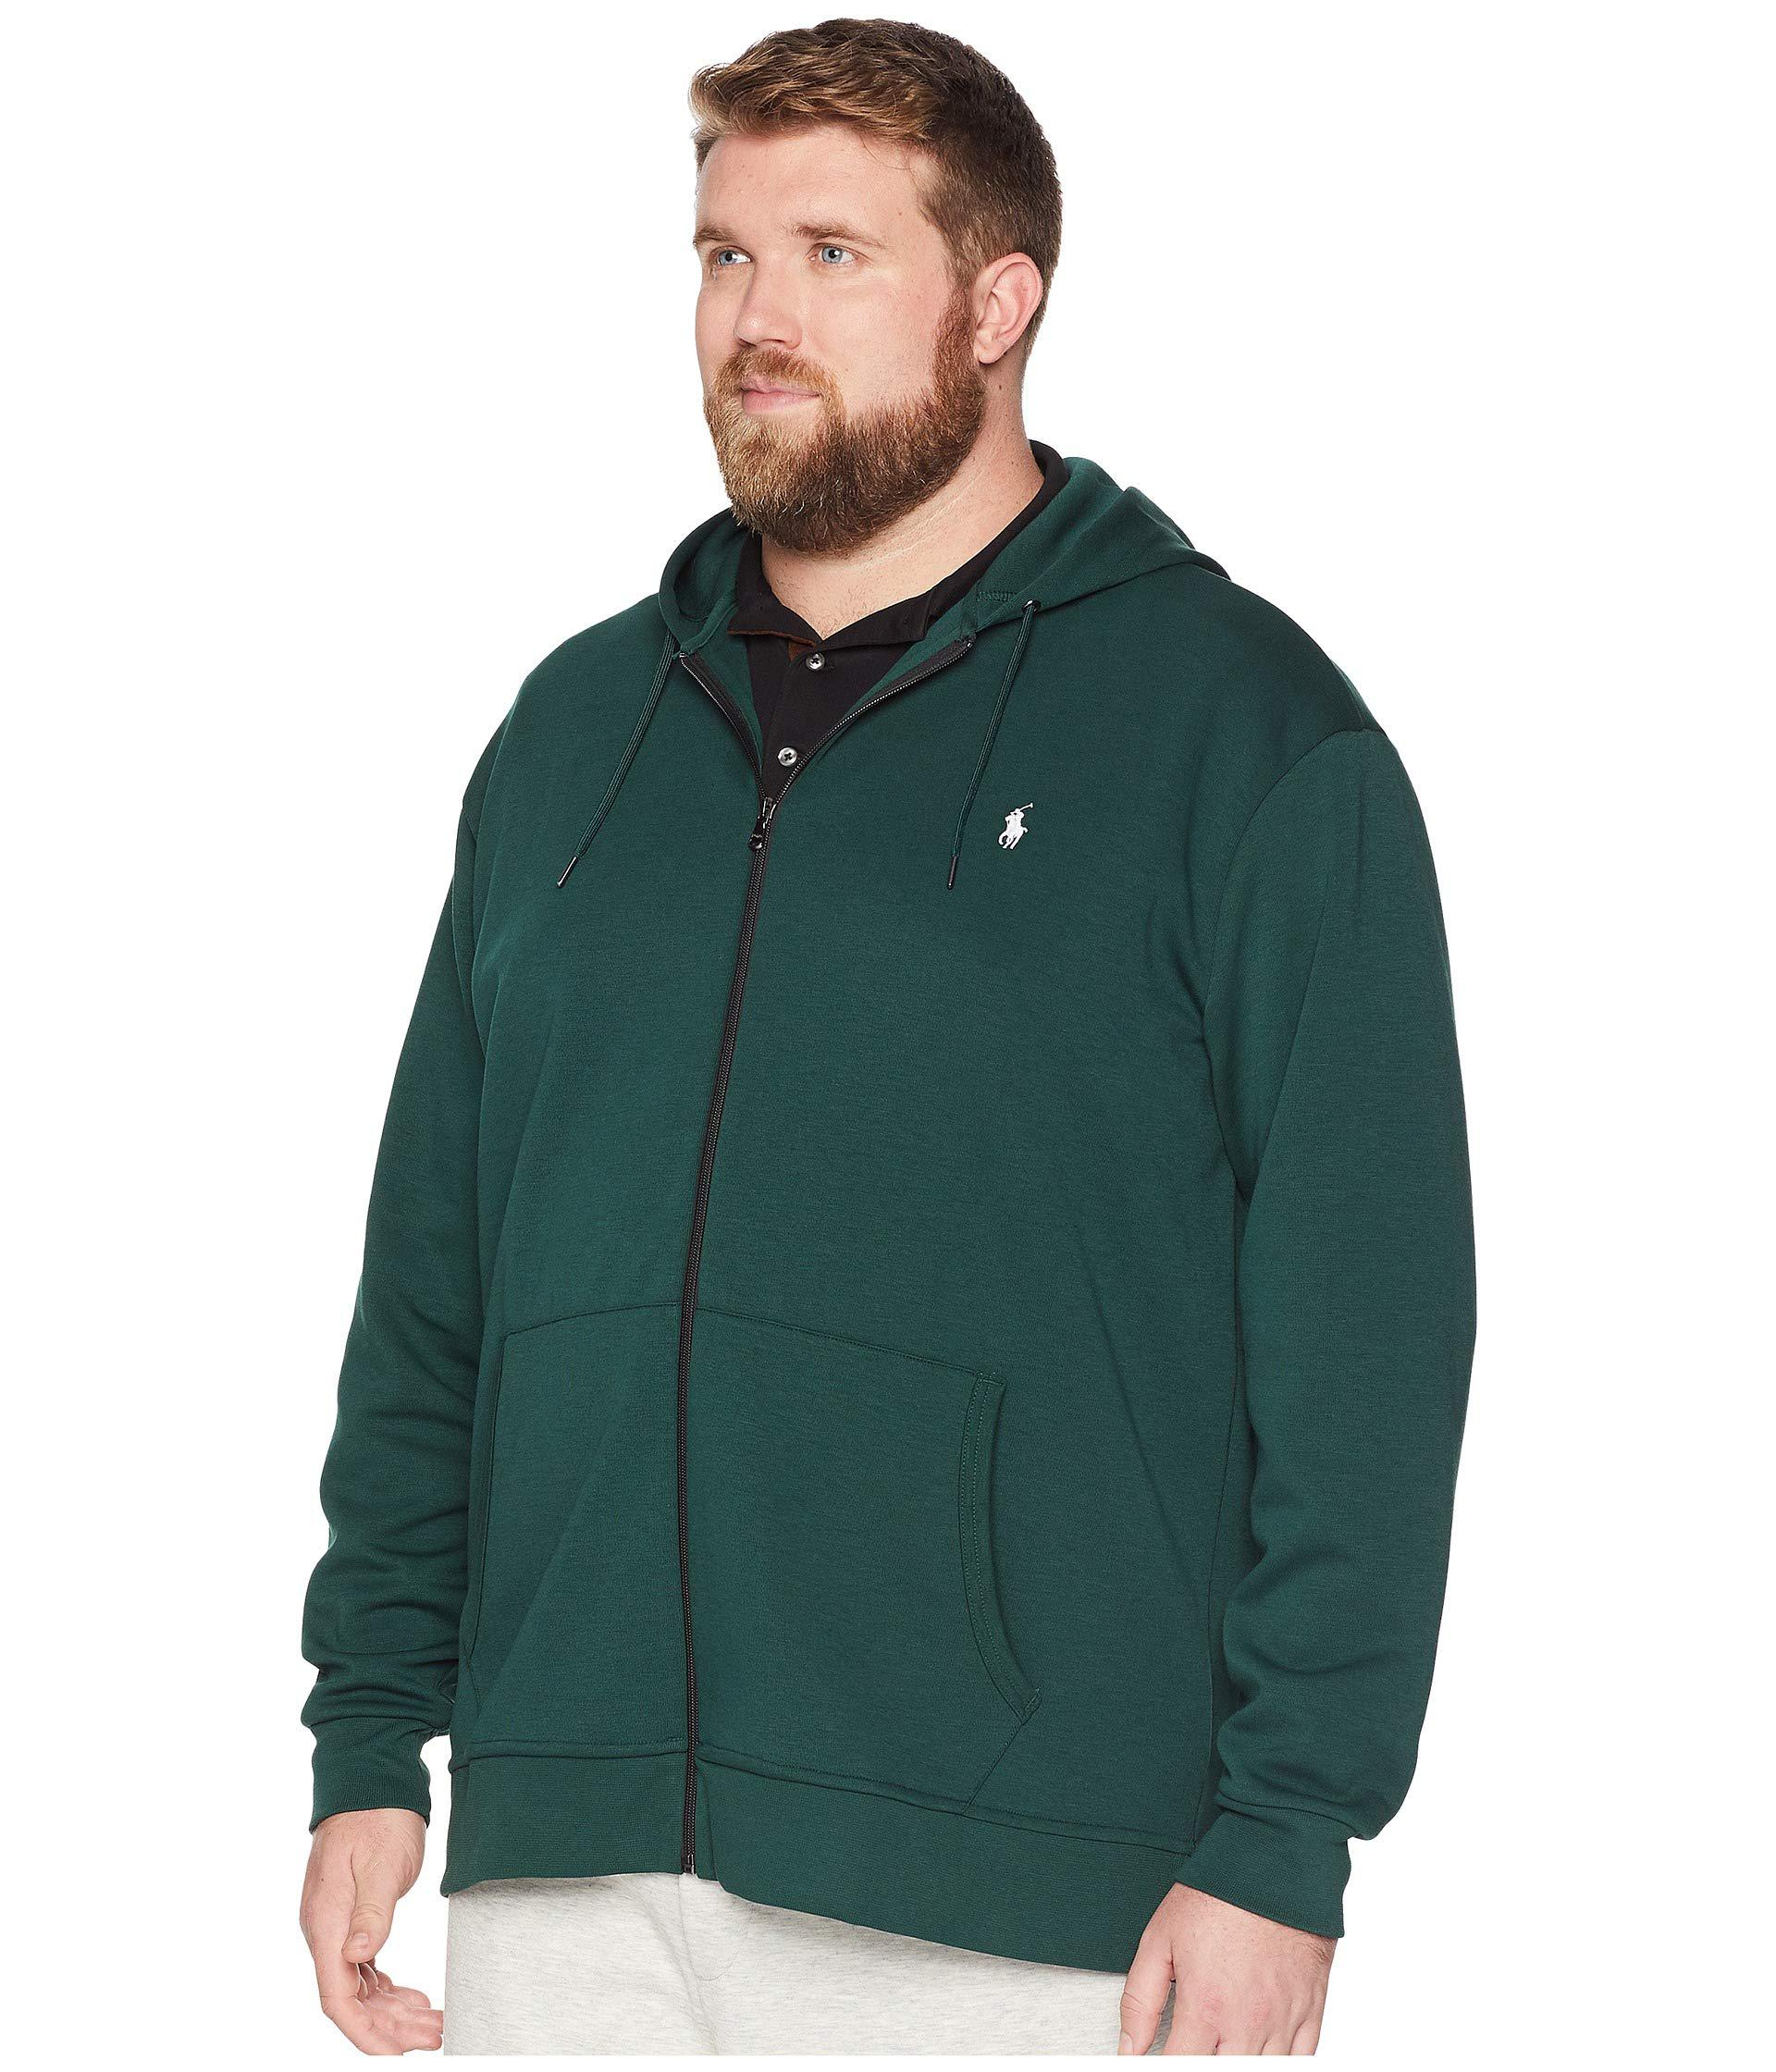 Lyst - Polo Ralph Lauren Big Tall Double Knit Full Zip (college Green) Men s  Clothing in Green for Men f6786d7aa